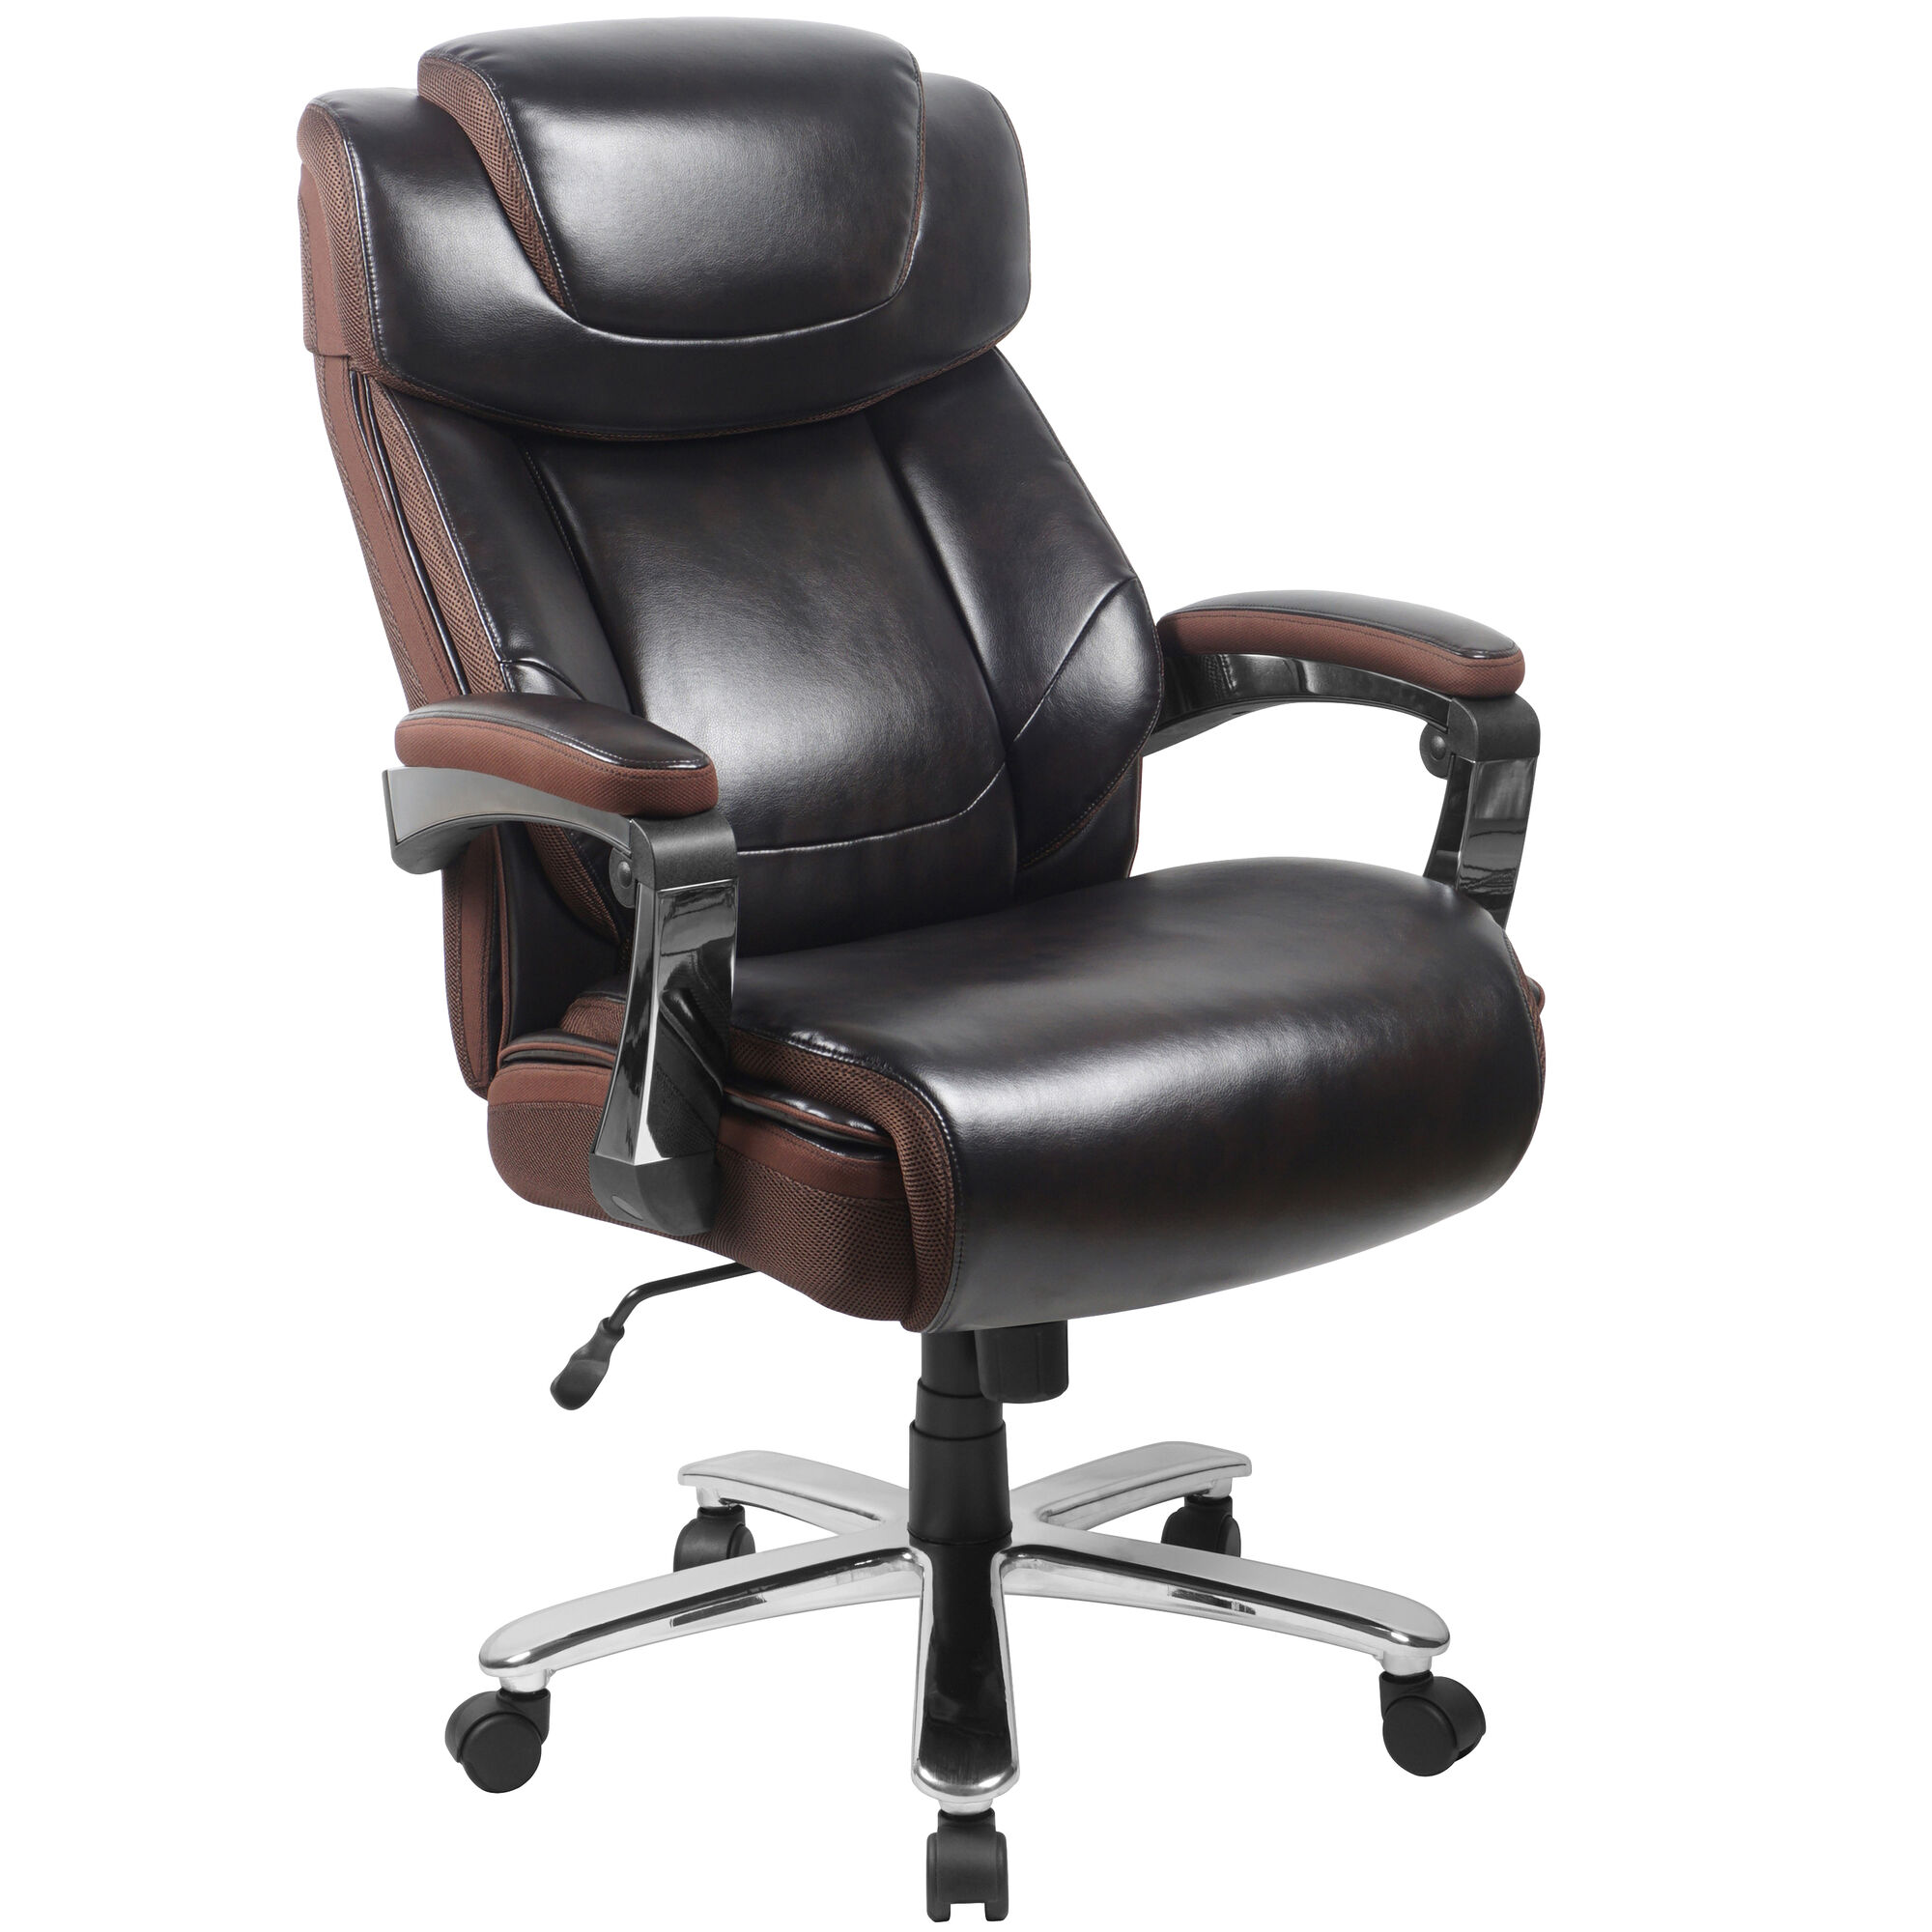 Fine Big Tall Office Chair Brown Leathersoft Executive Swivel Office Chair With Headrest And Wheels Gmtry Best Dining Table And Chair Ideas Images Gmtryco